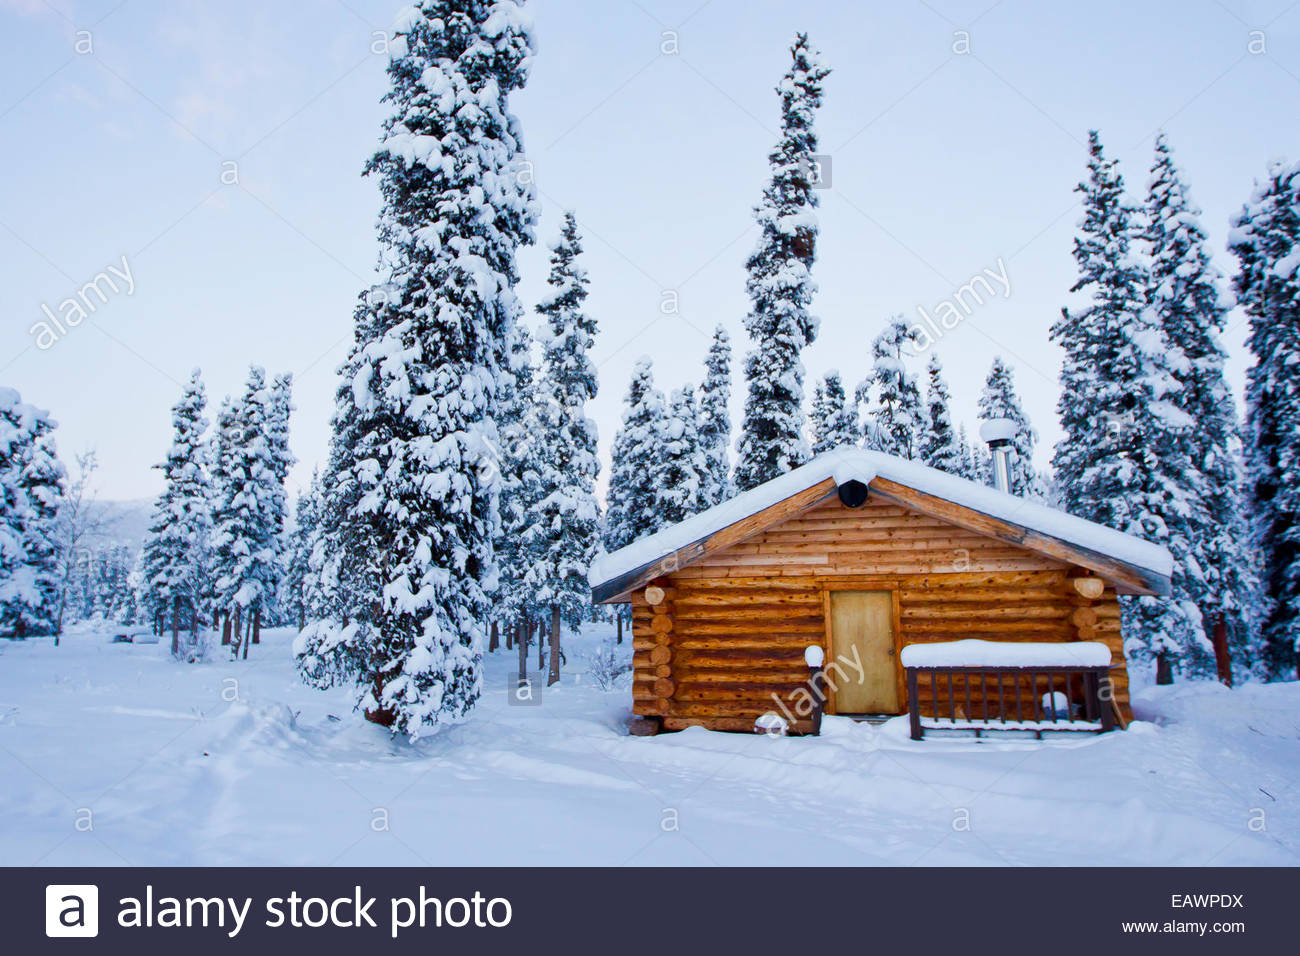 A cozy log cabin in snowy evergreen forest stock photo